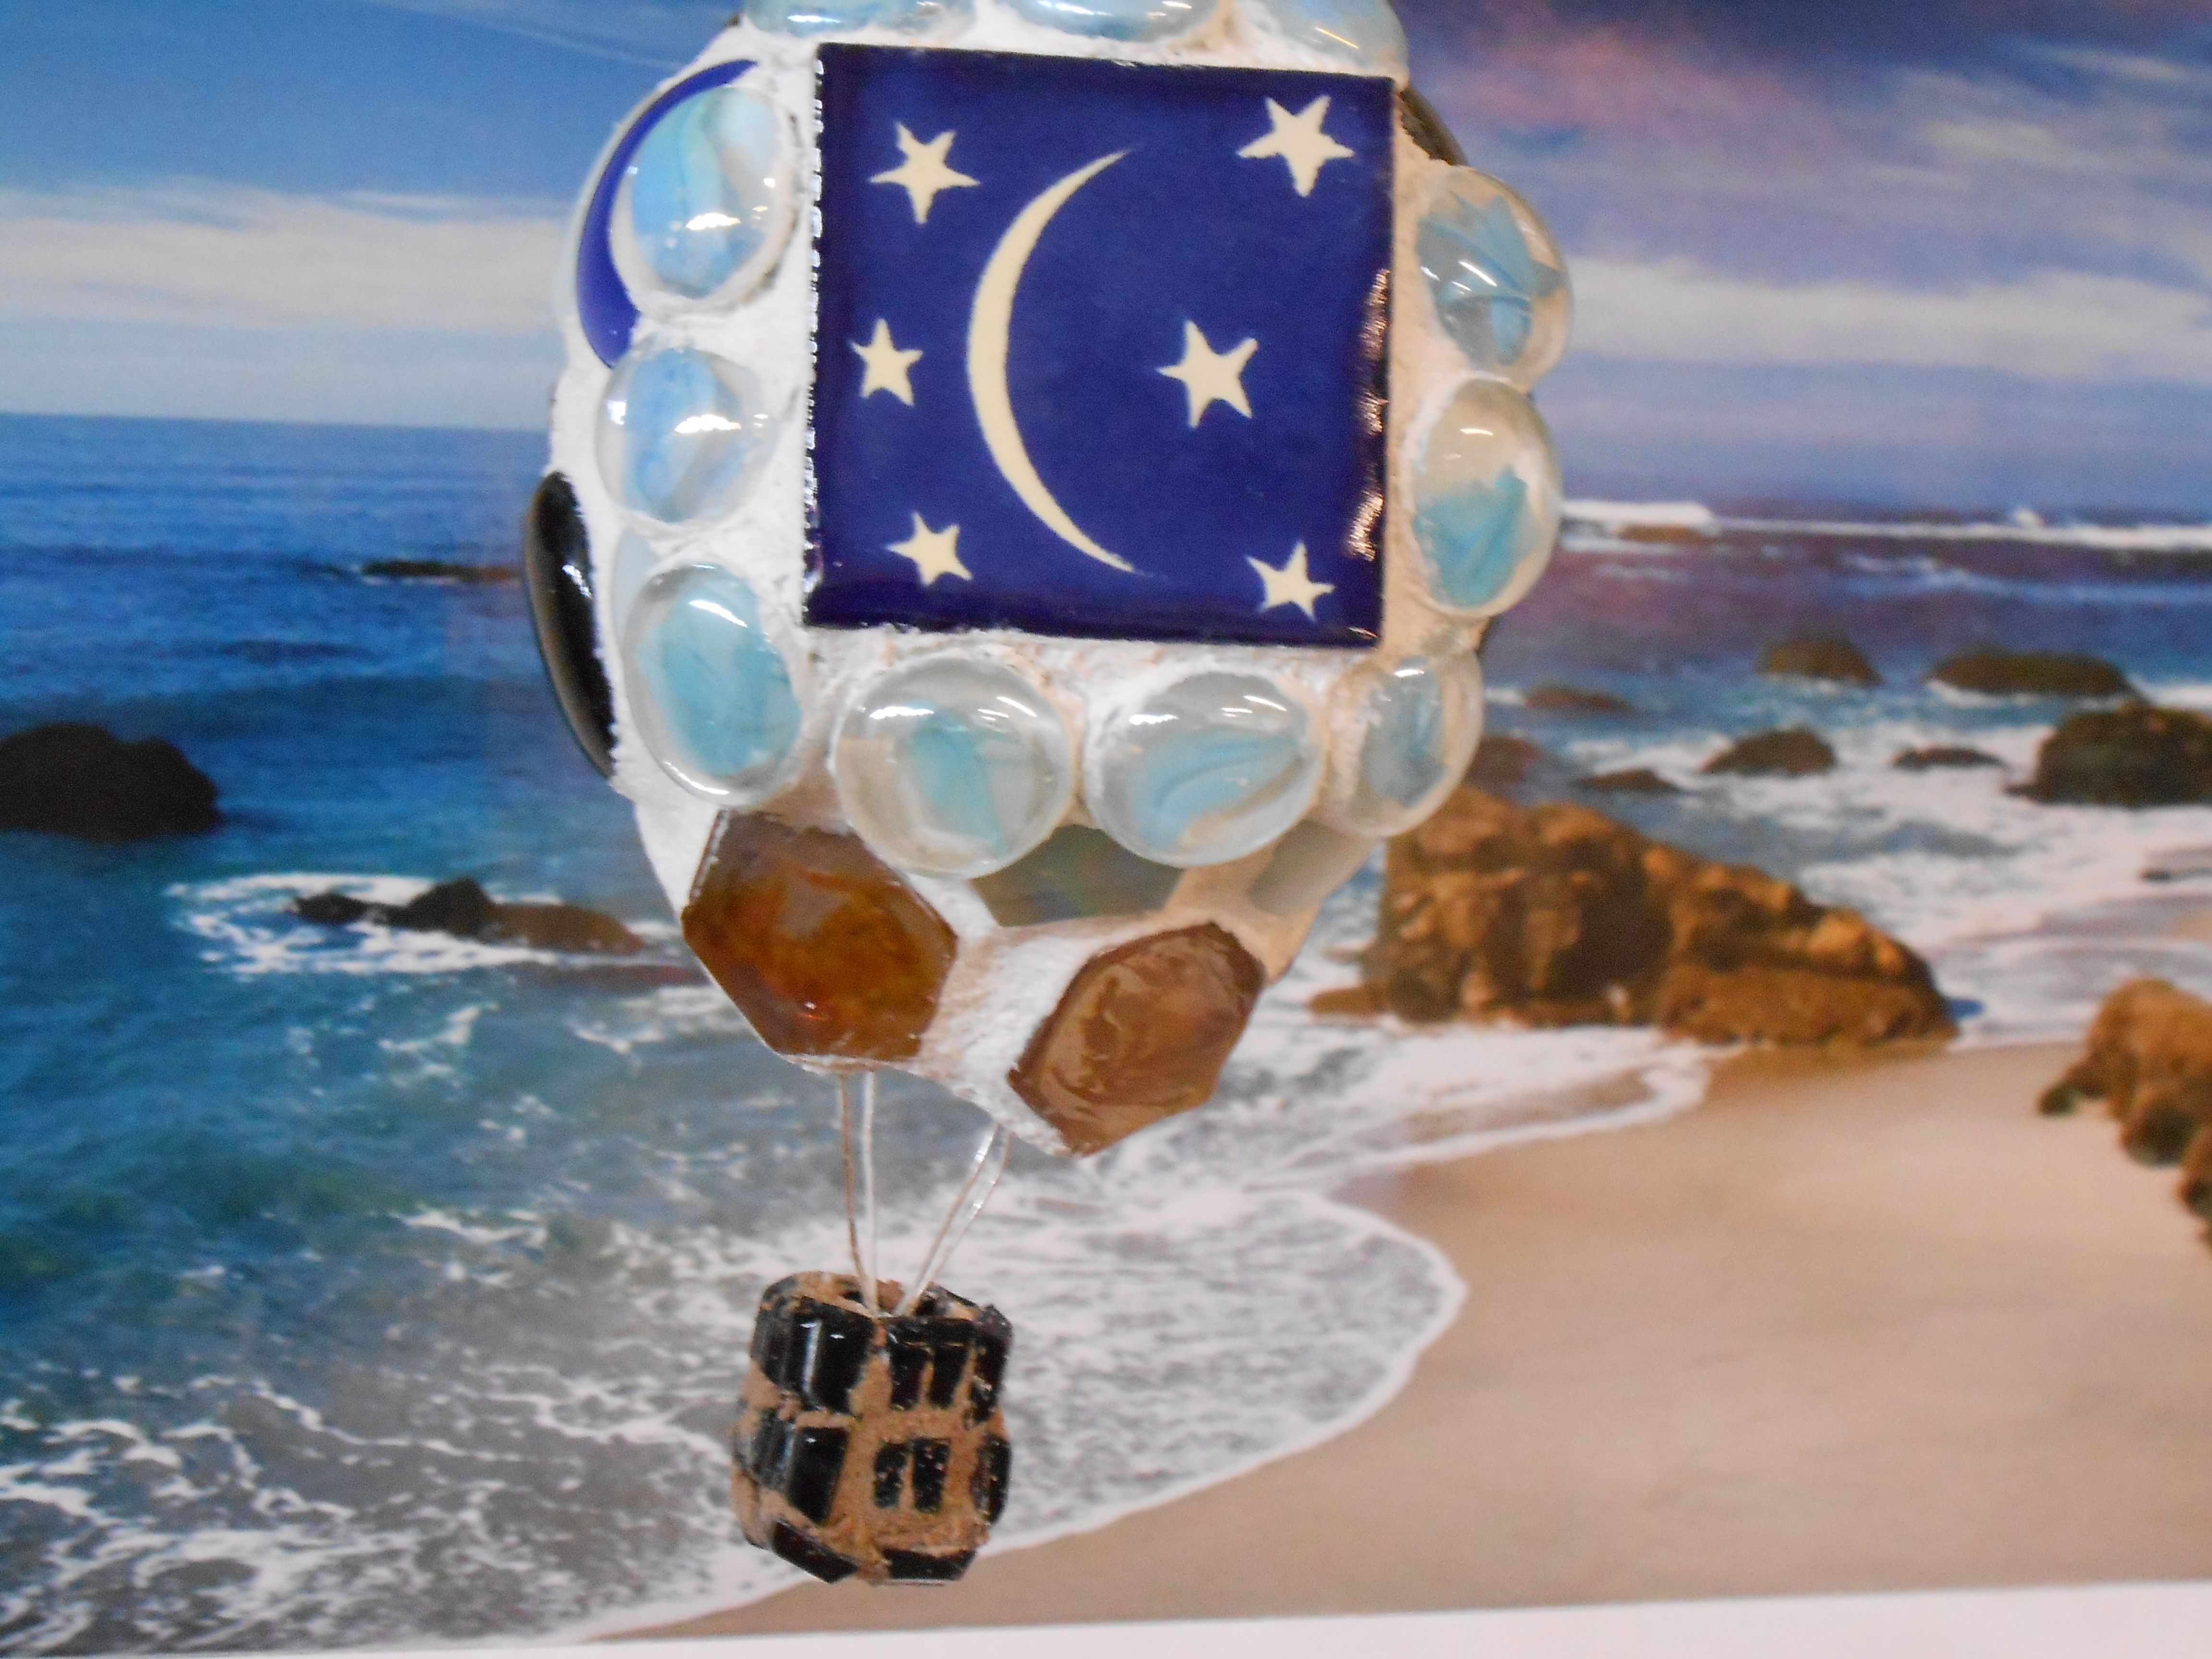 Starry Night pretty Mosaic Hot Air Balloon for sale on